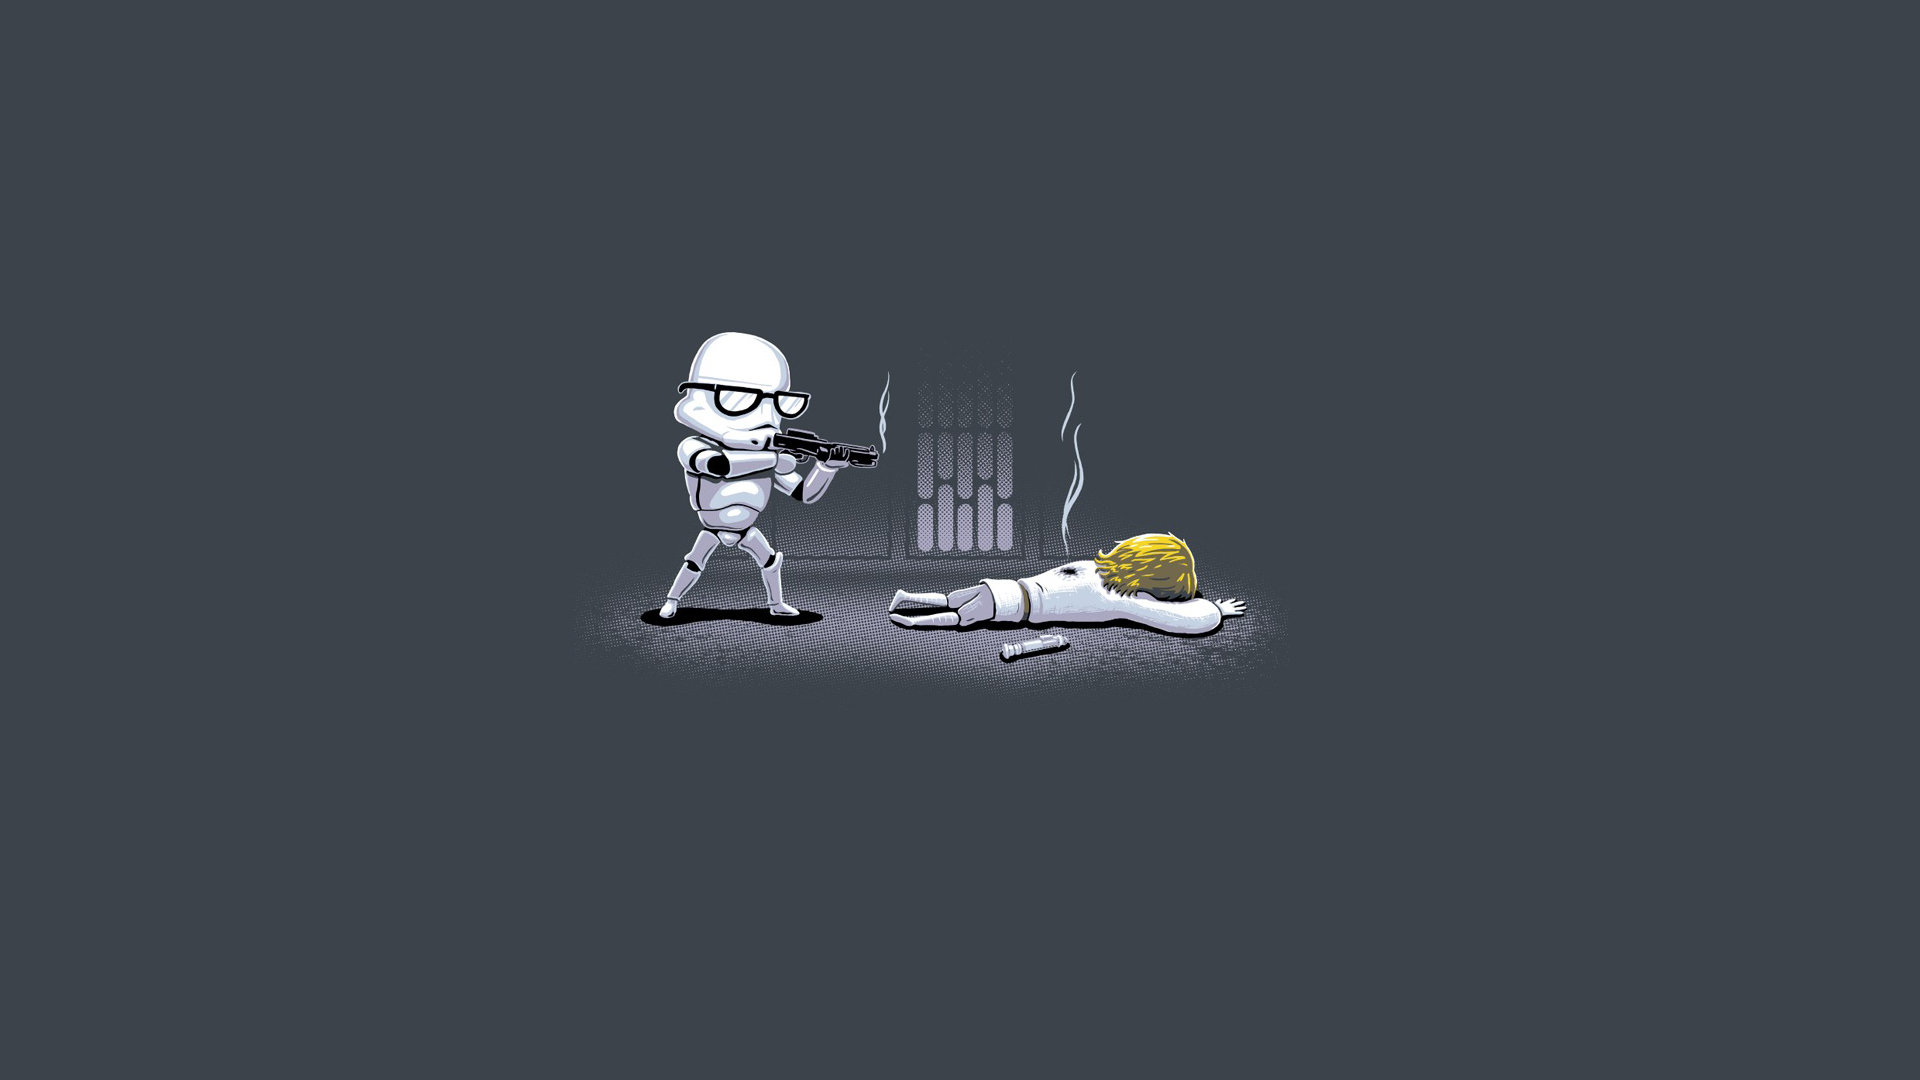 funny star wars background hd 1080p 376030